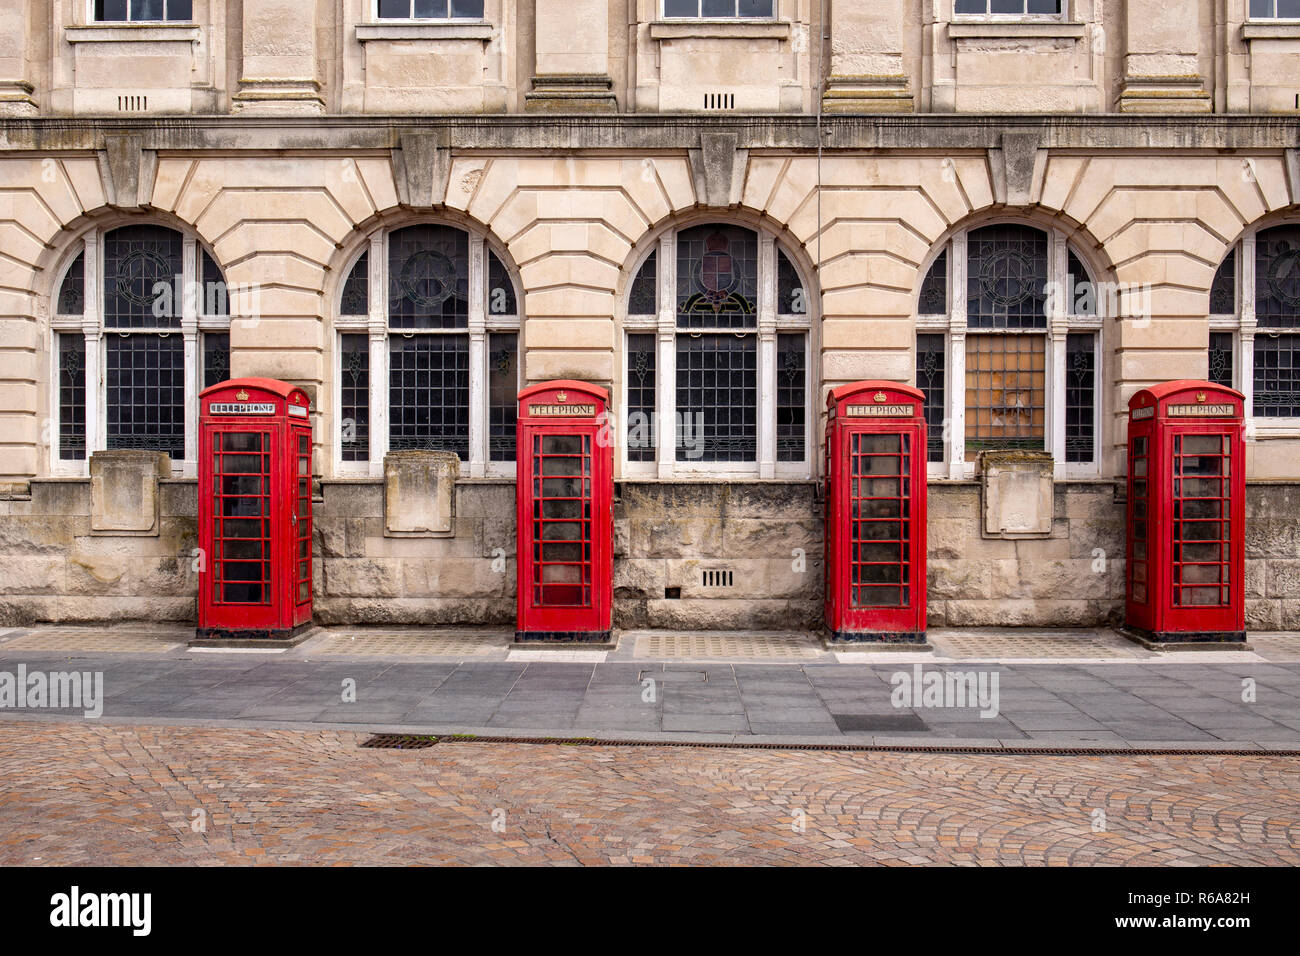 4 of 8 K2 telephone boxes outside the former police head quarters and General Post Office and Sorting office building in Abingdon Street Blackpool UK - Stock Image